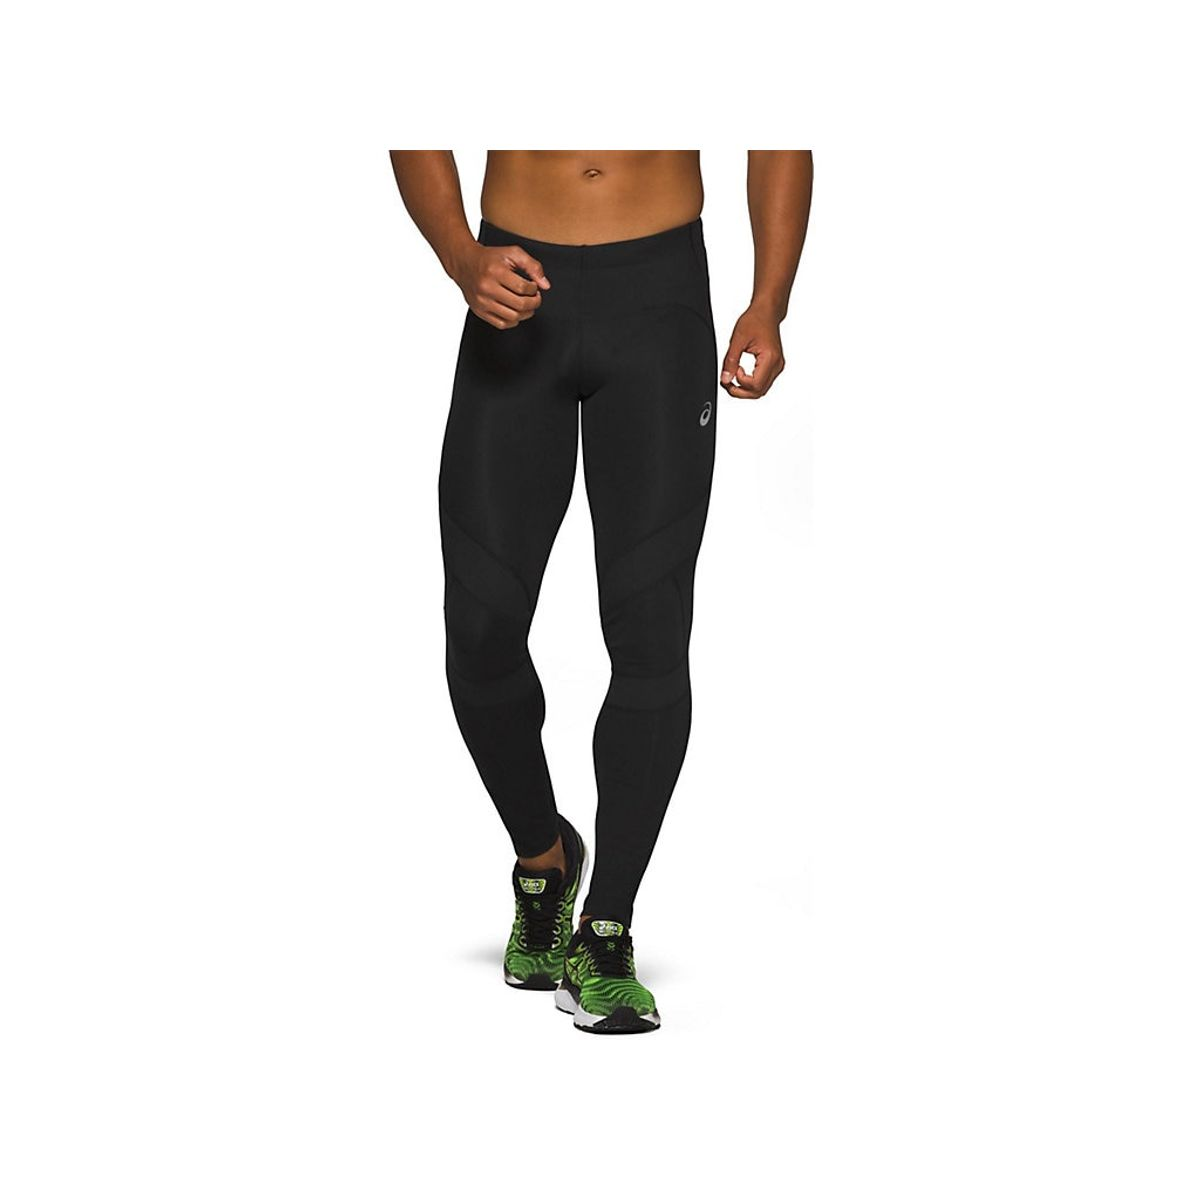 Calca-Legging--ASICS-Balance-Tight-2---Preto---Masculino